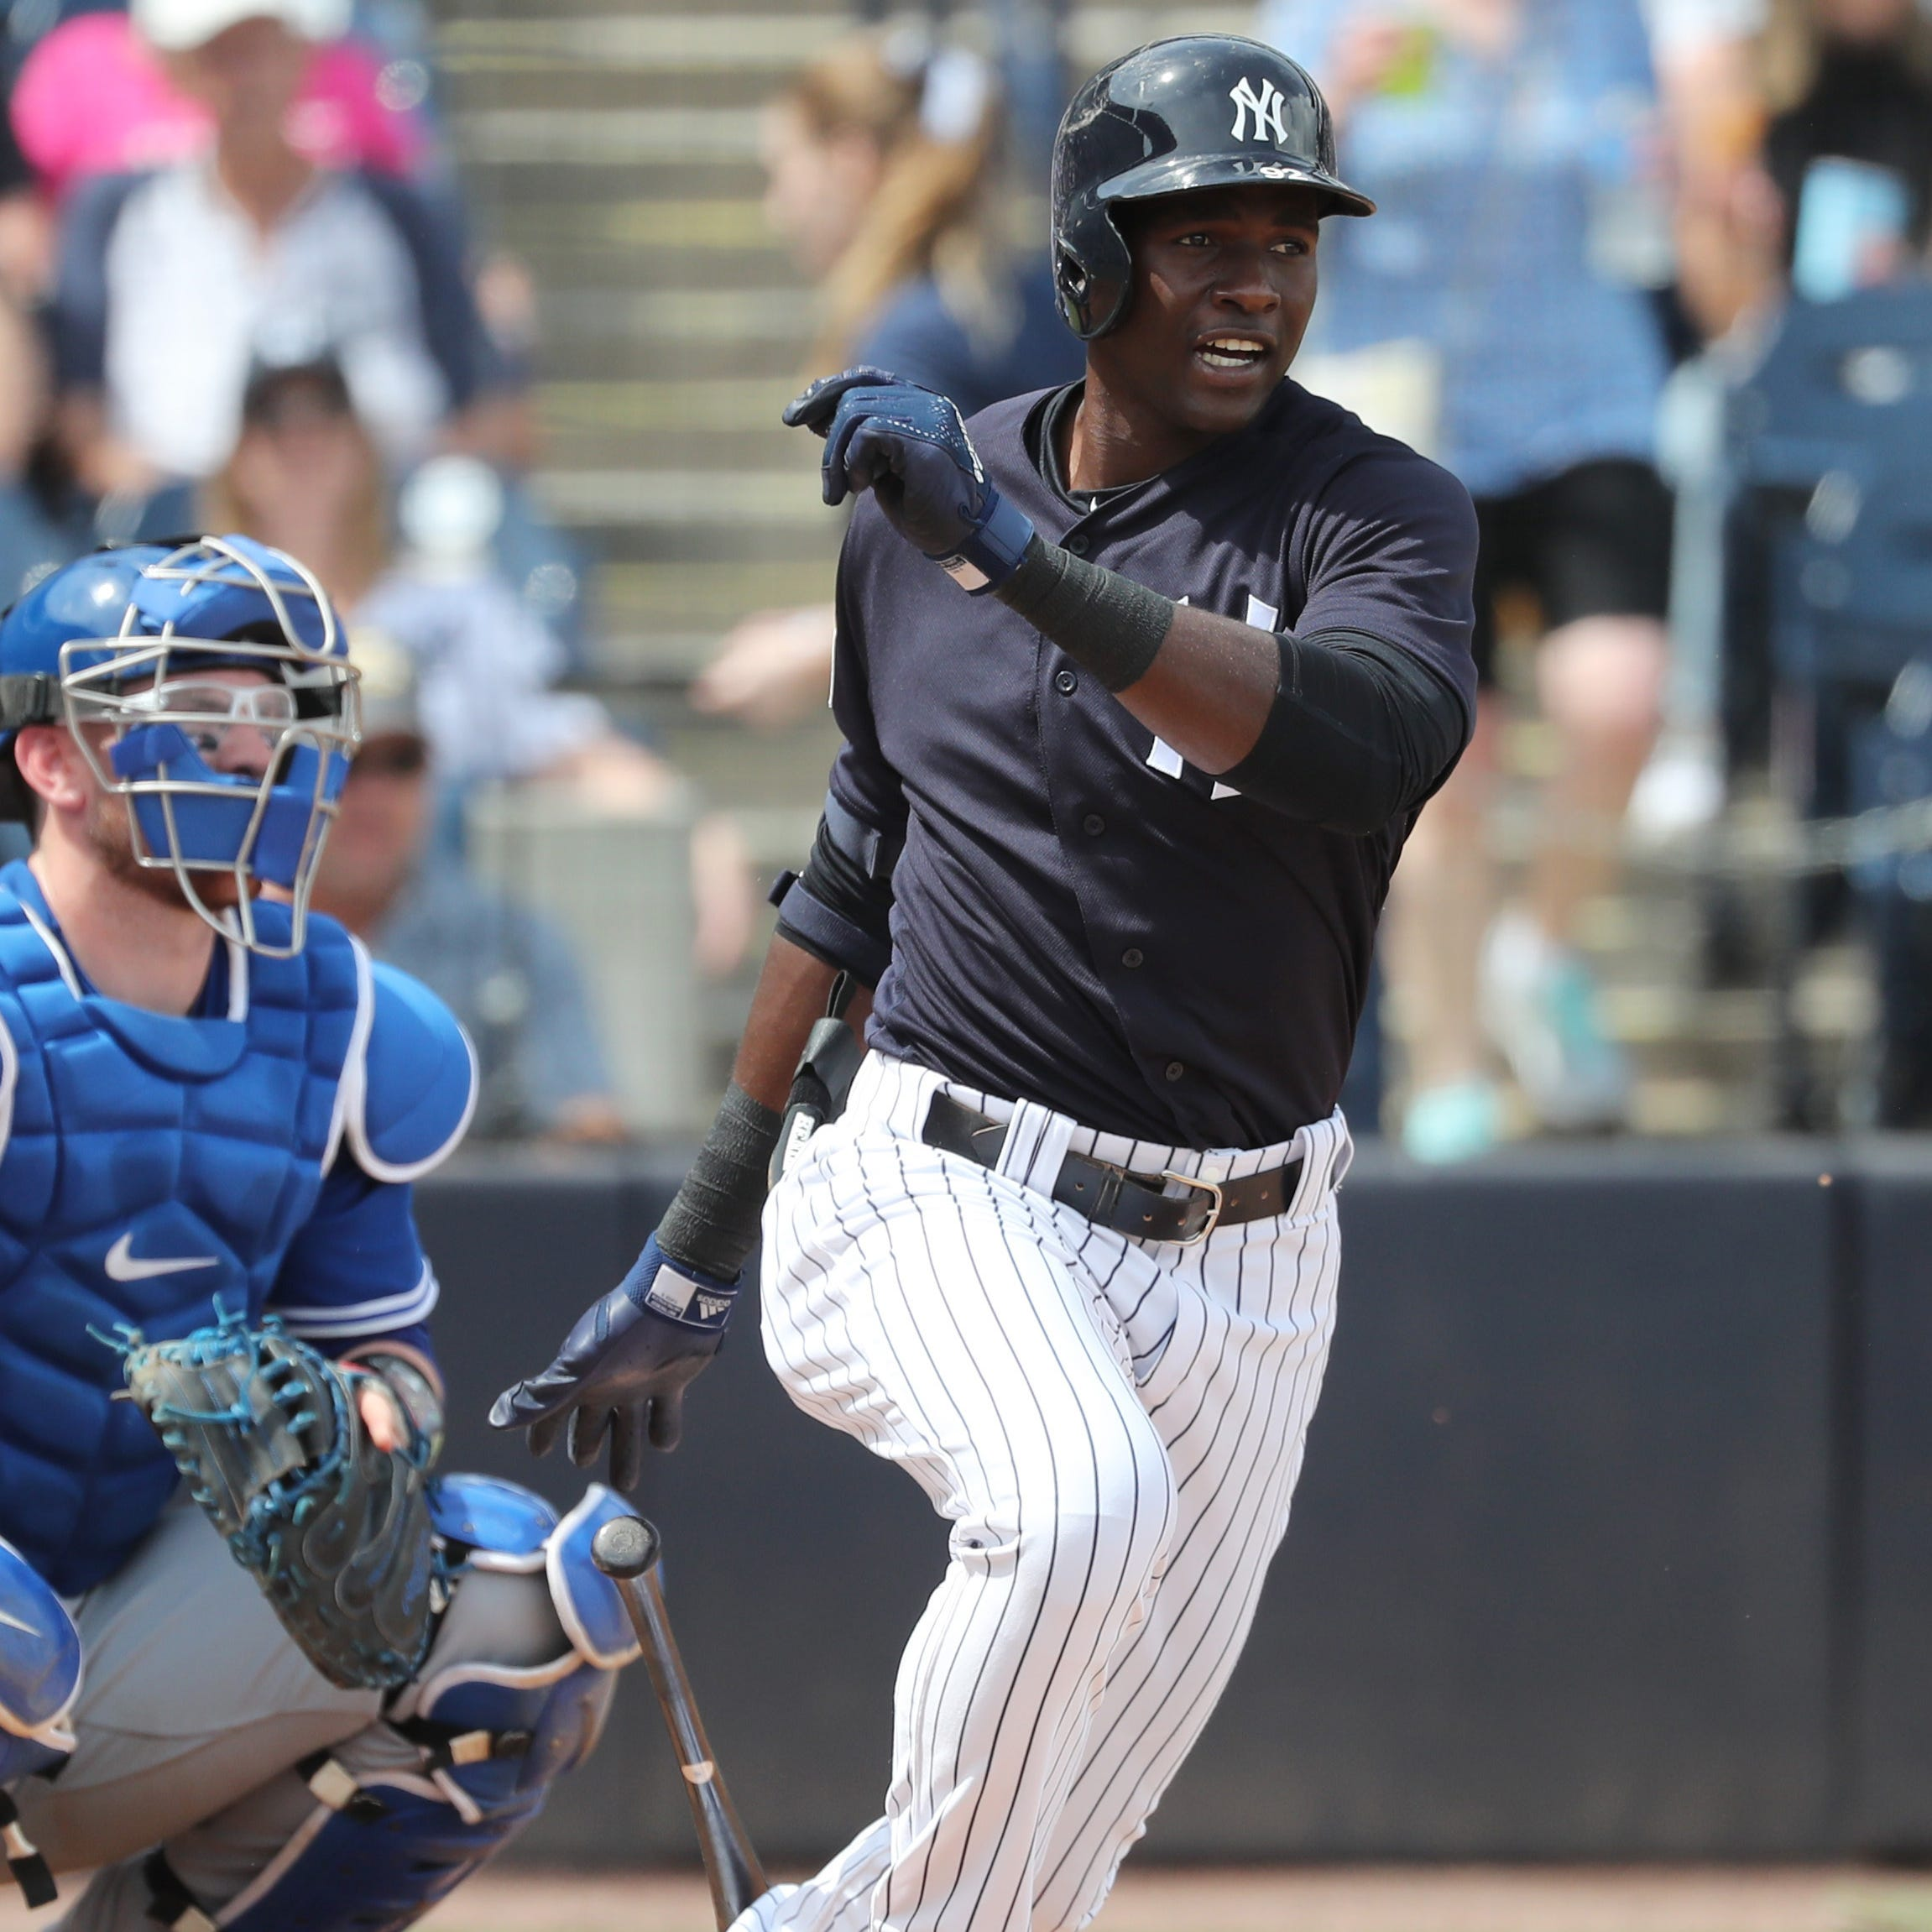 Top New York Yankees prospect Estevan Florial fractures right wrist